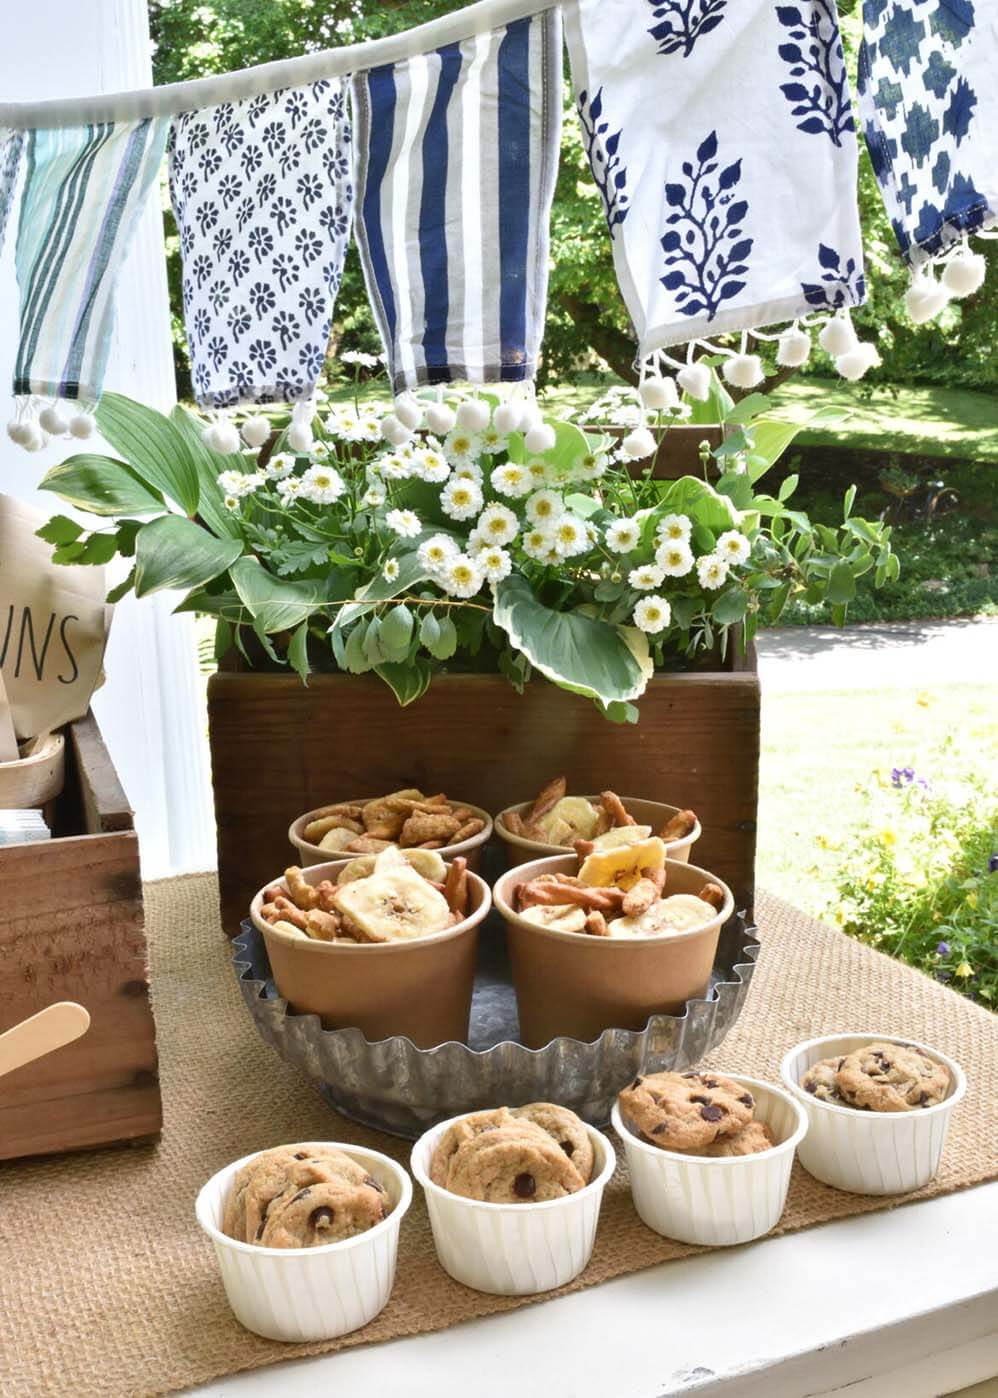 Snacks in cups for safe social distancing bbq